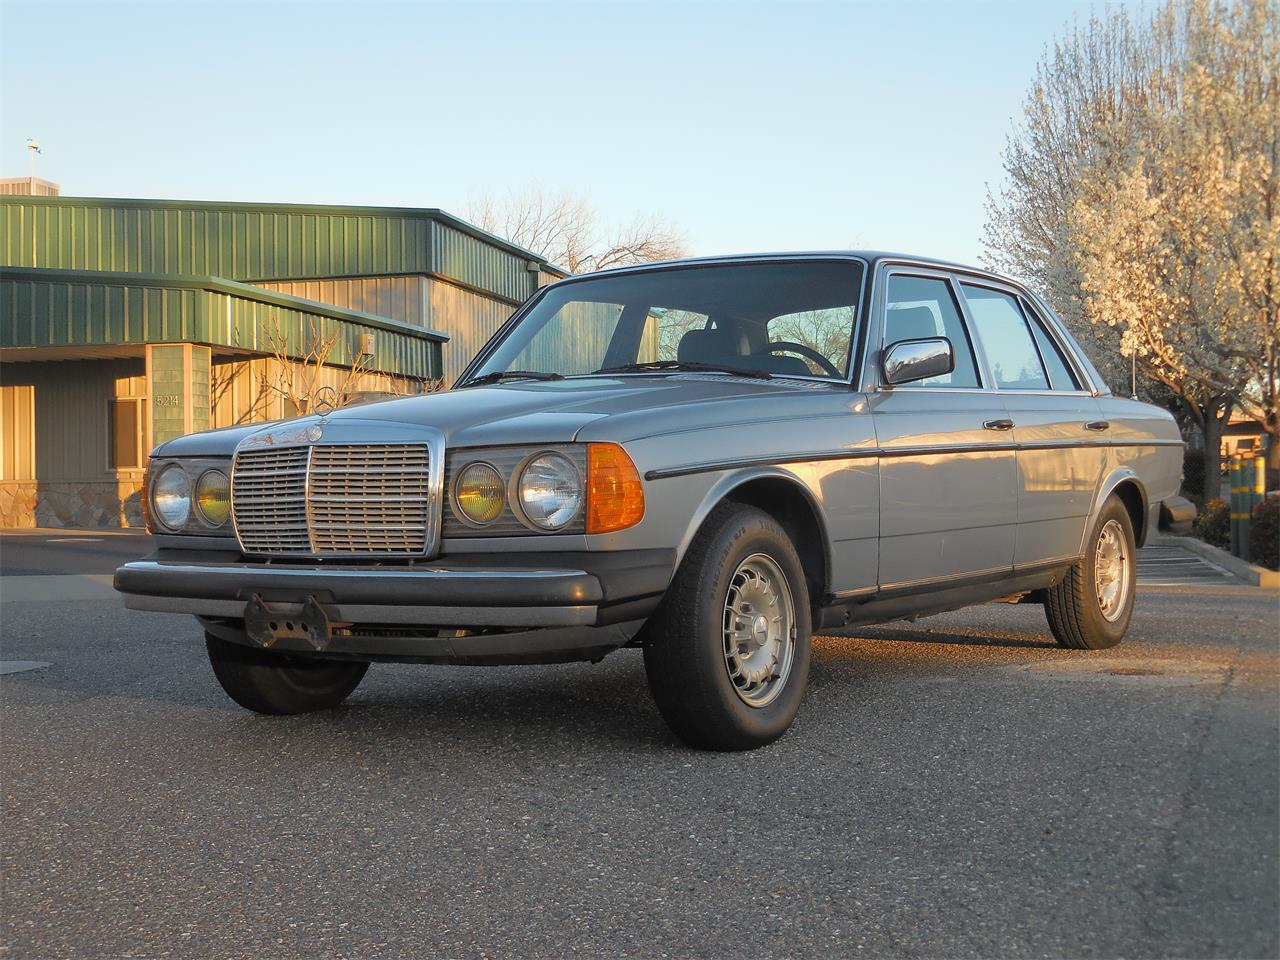 1982 Mercedes-Benz 300D for sale in Anderson, CA – photo 5